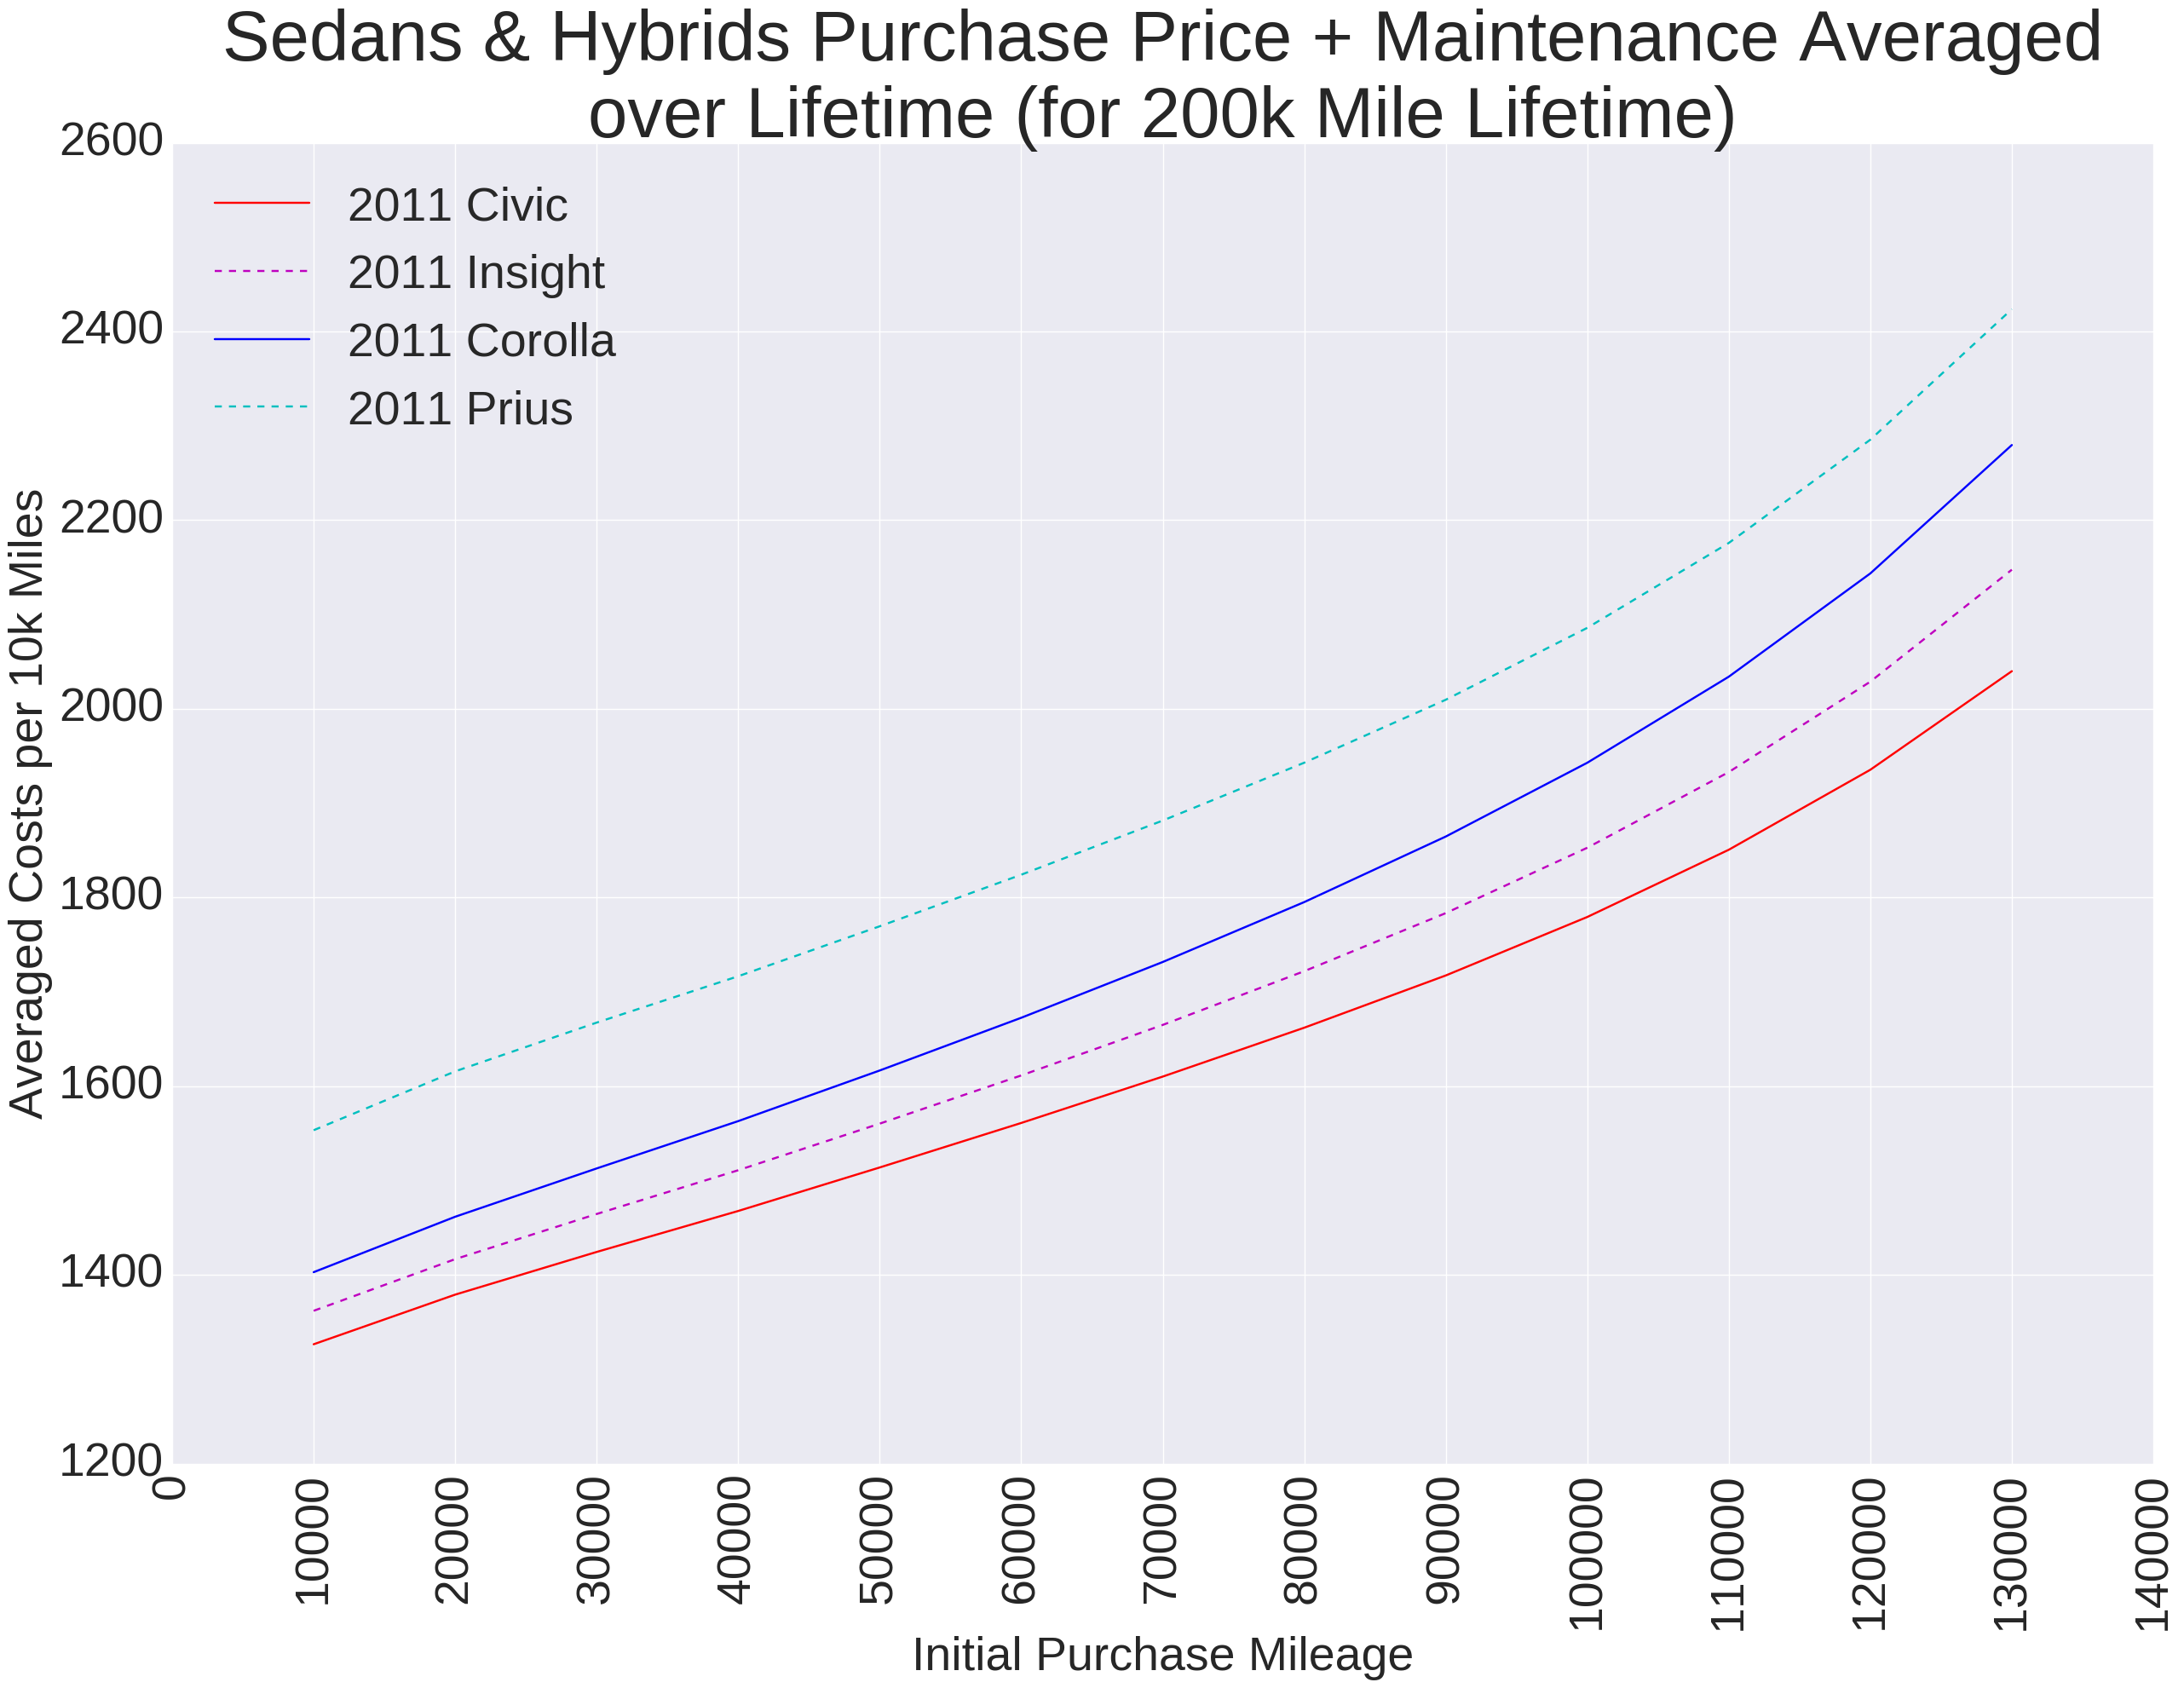 as expected the hybrids have worse value due to a higher purchase price before accounting for fuel efficiency the average miles per gallon for each model